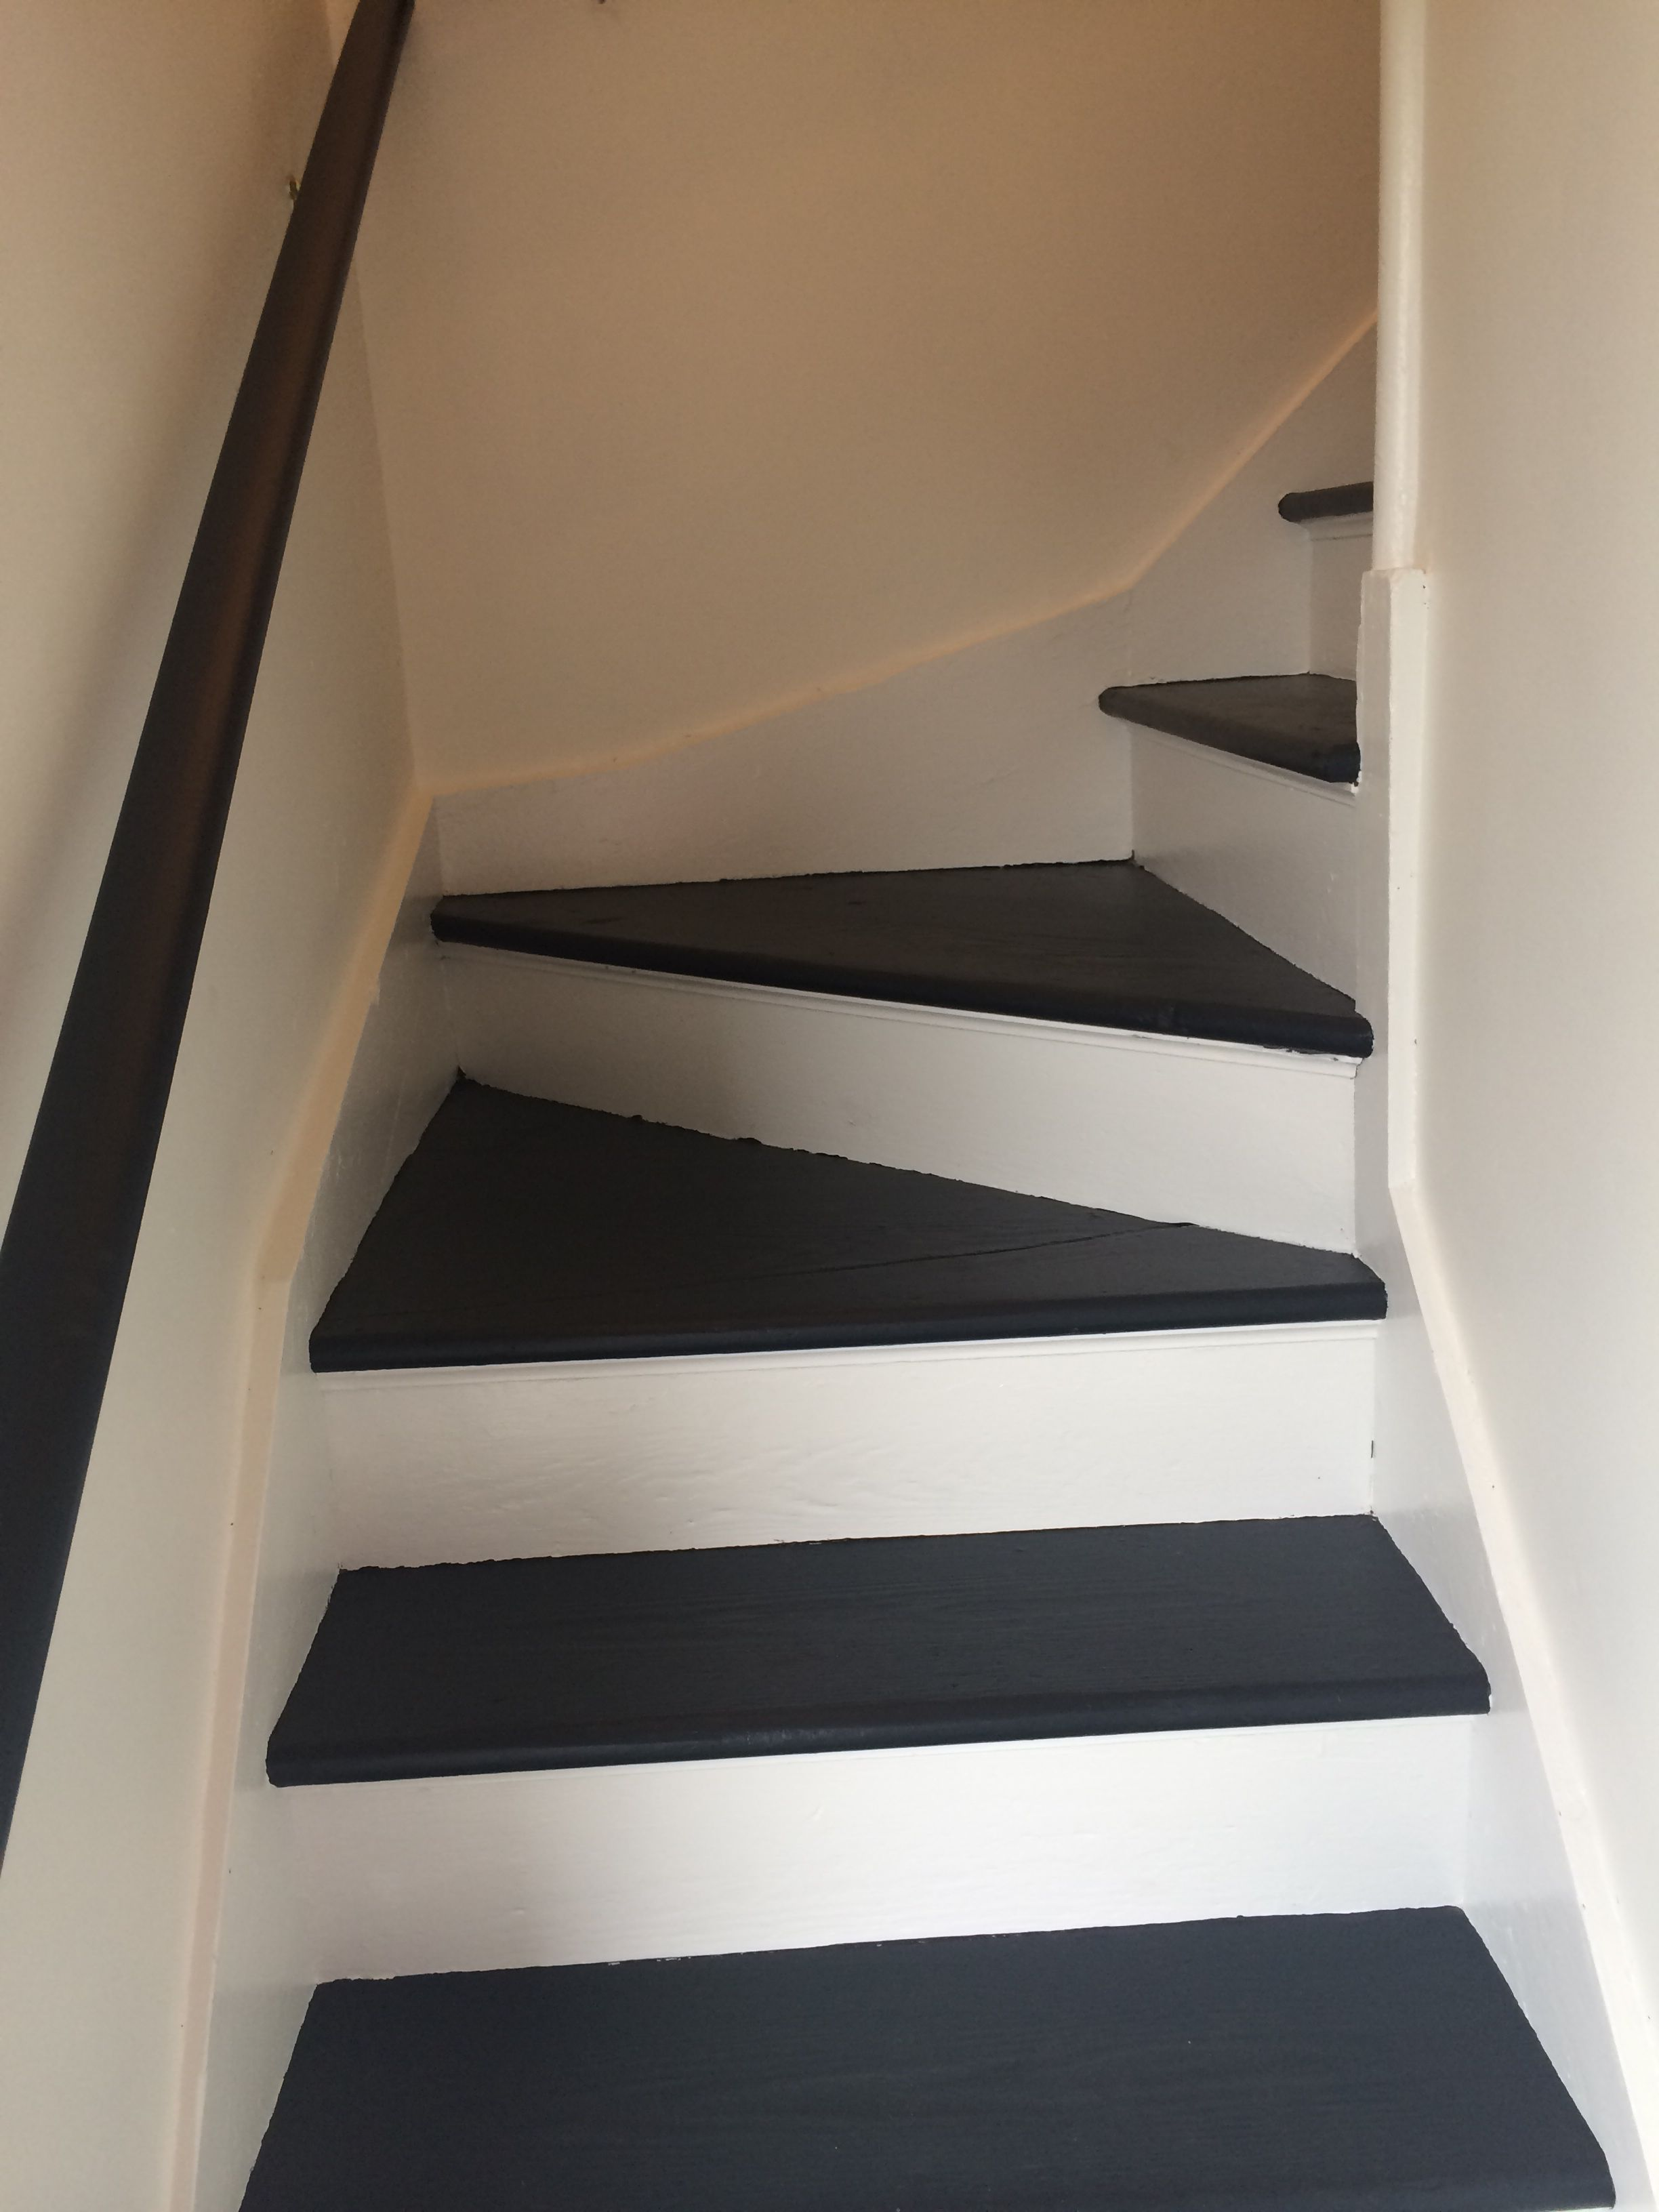 Back stairs AFTER. Swiss Coffee on walls, Low Luster Black on treads & banisters, White Dove on moldings and risers. (All colors from Benjamin Moore) So much light in this formally dark & dreary stairwell. #swisscoffeebenjaminmoore